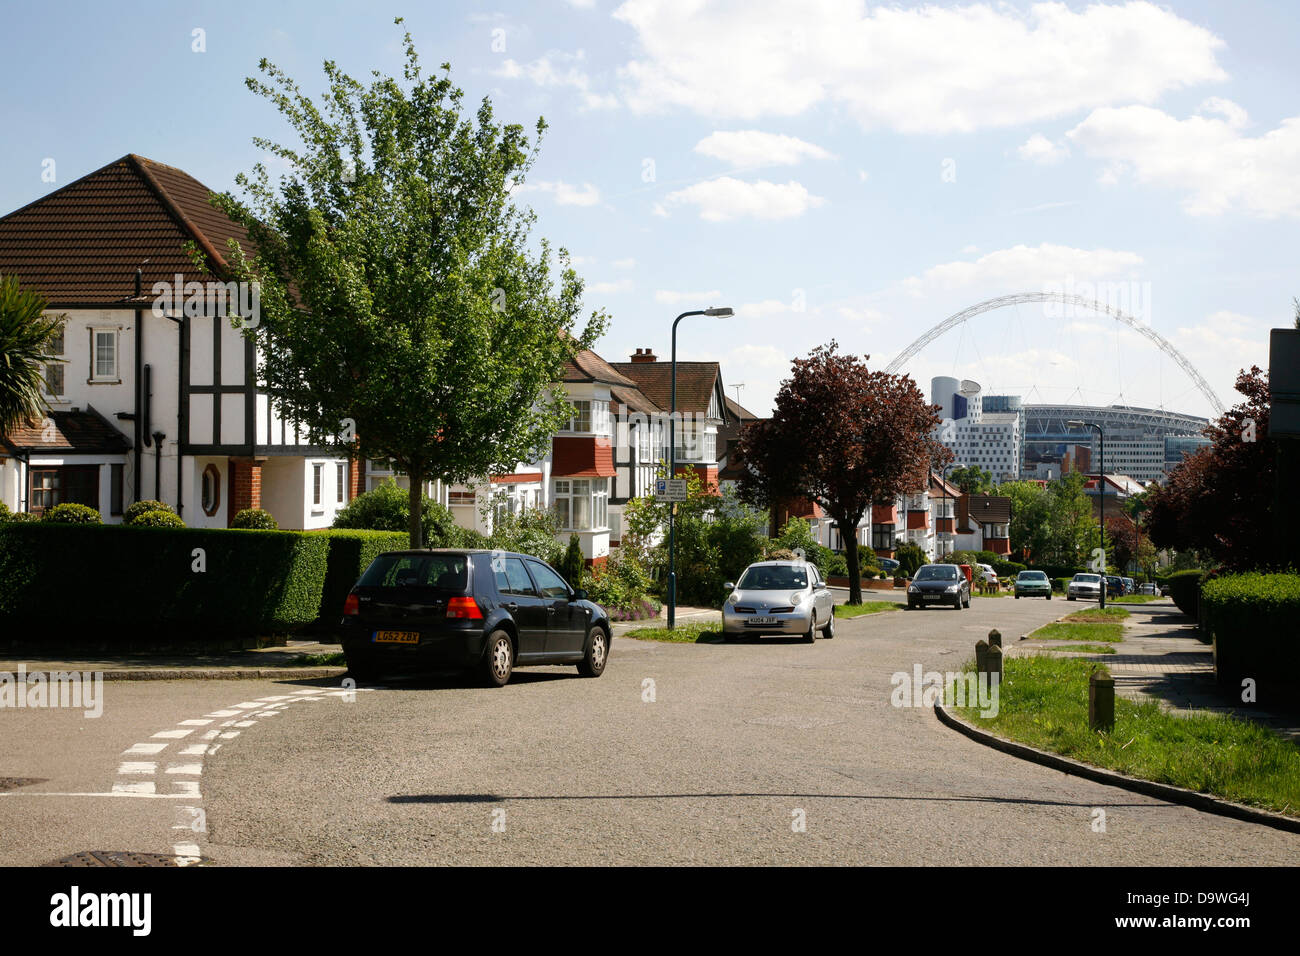 Distant view of Wembley Stadium from Barn Rise from the Barn Hill area of Wembley Park, London, UK - Stock Image